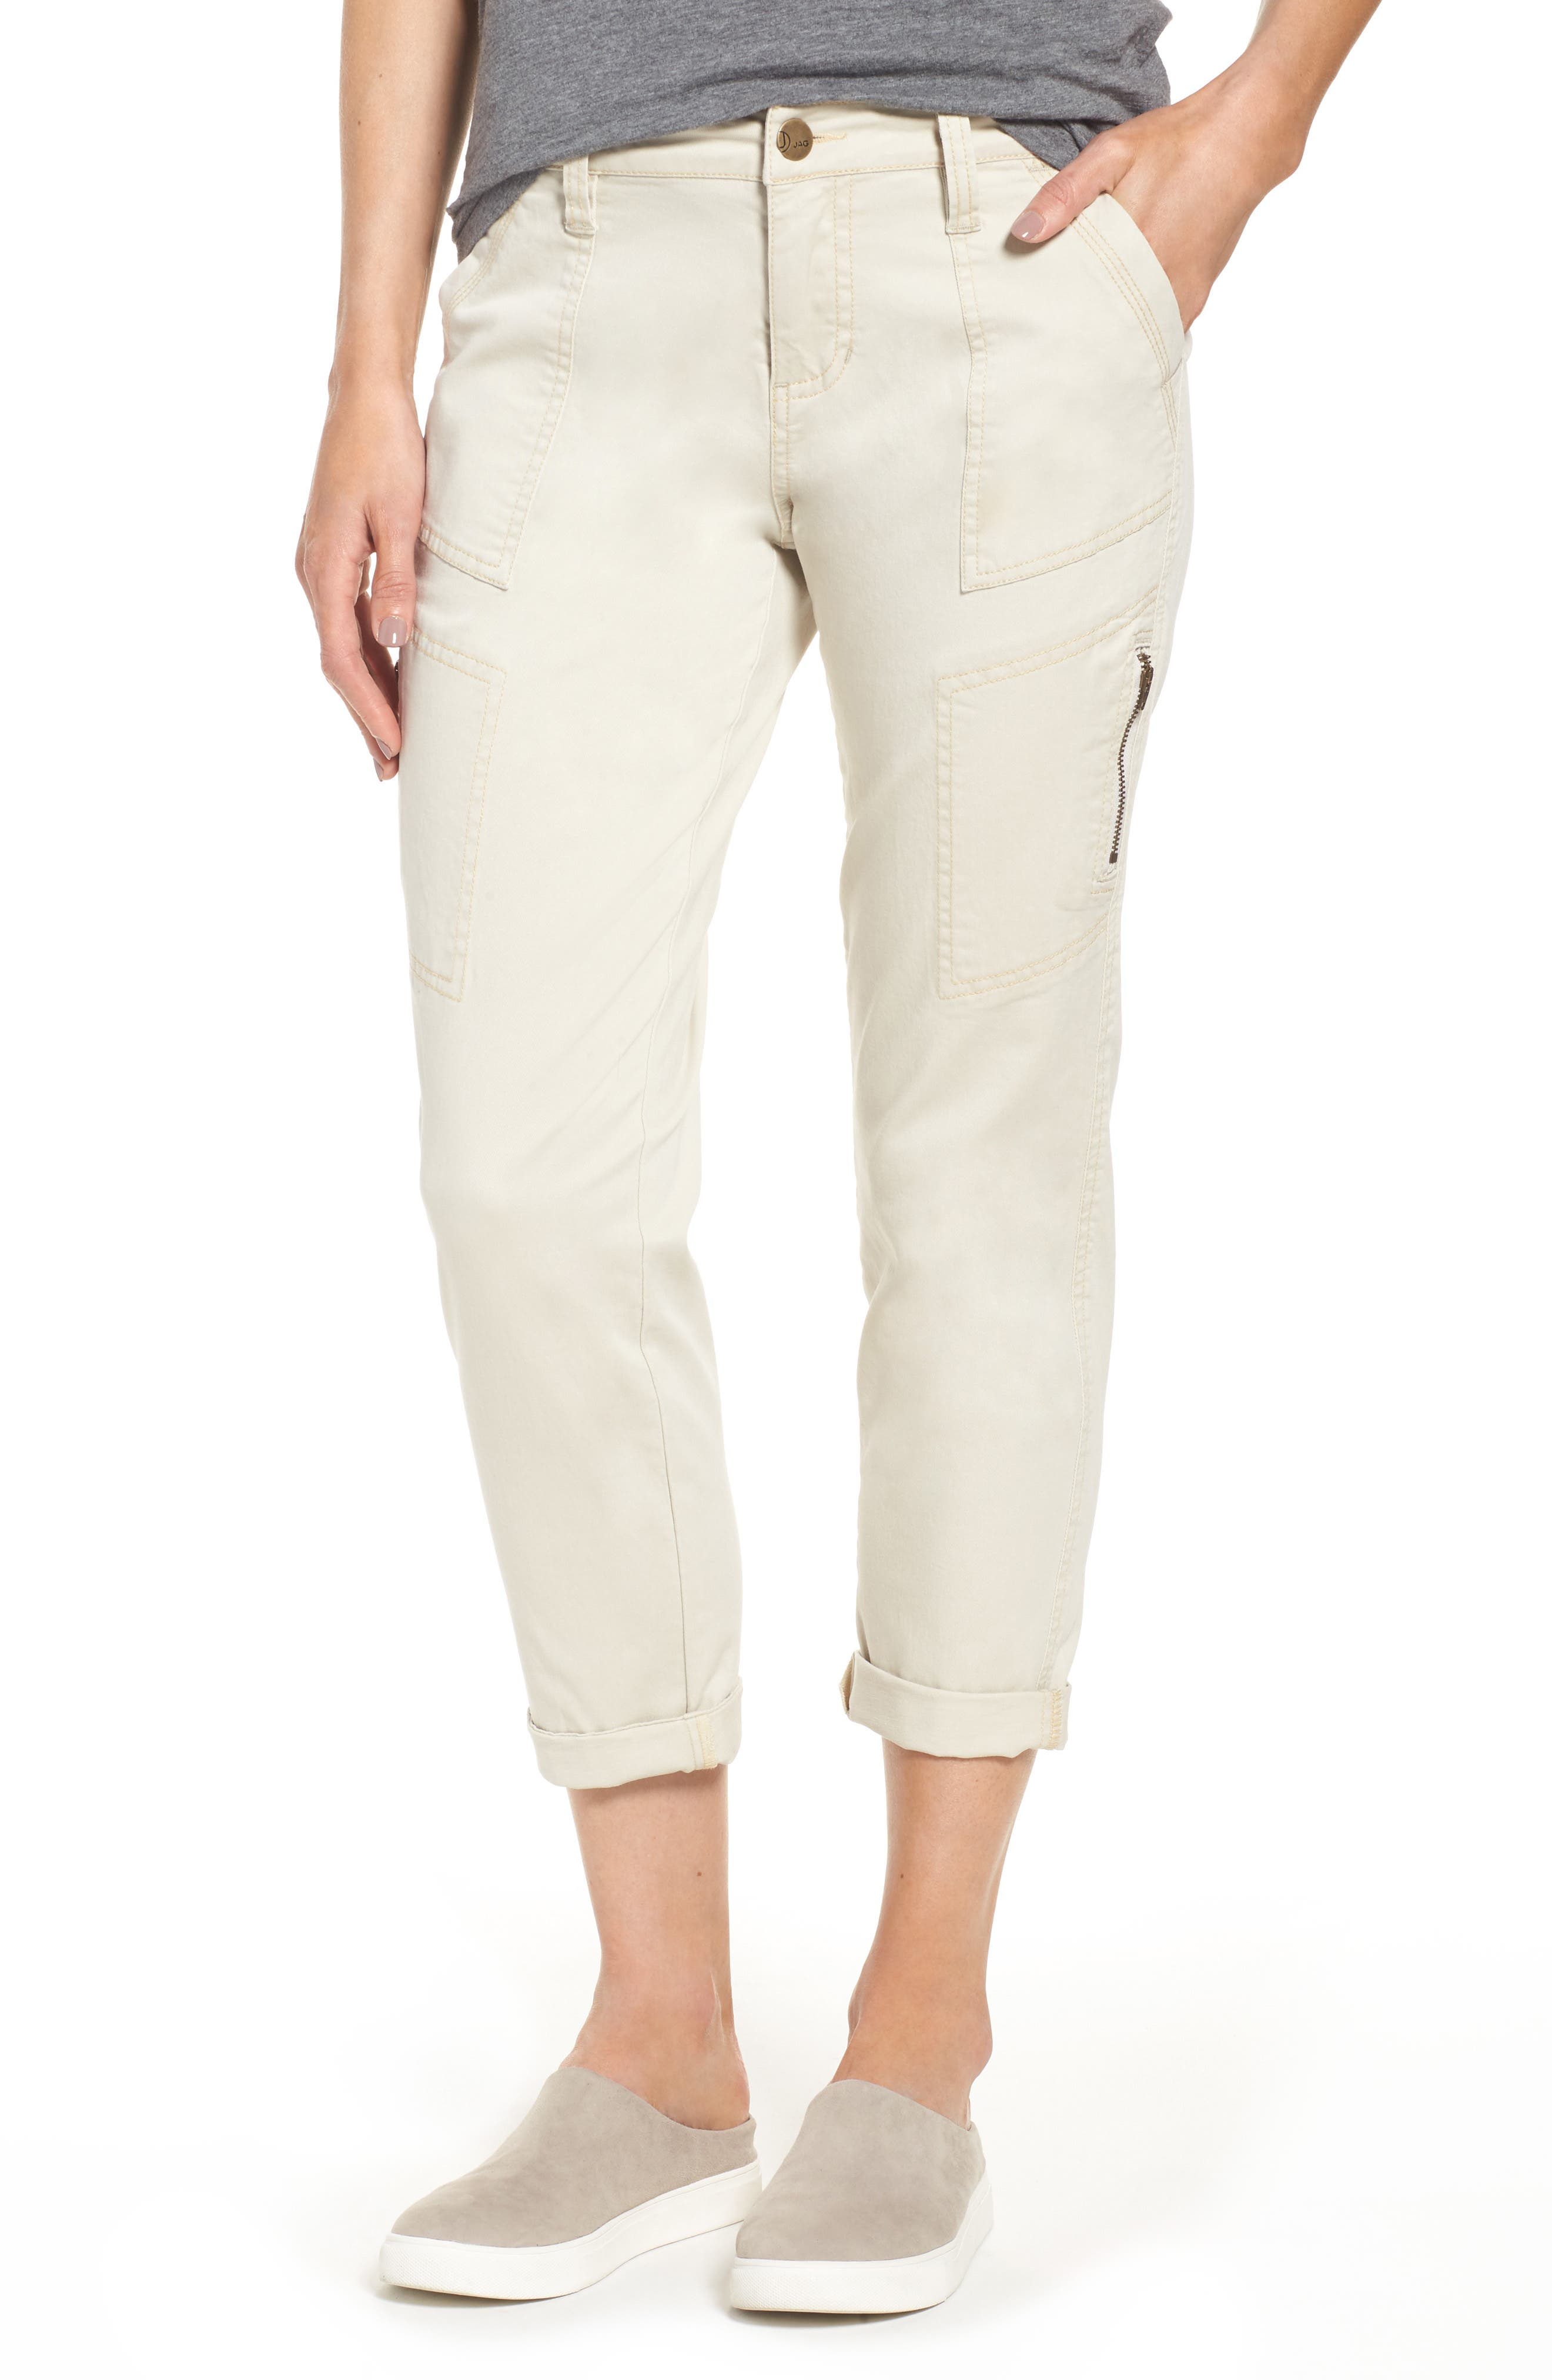 Gable Stretch Twill Utility Pants,                         Main,                         color, Stone